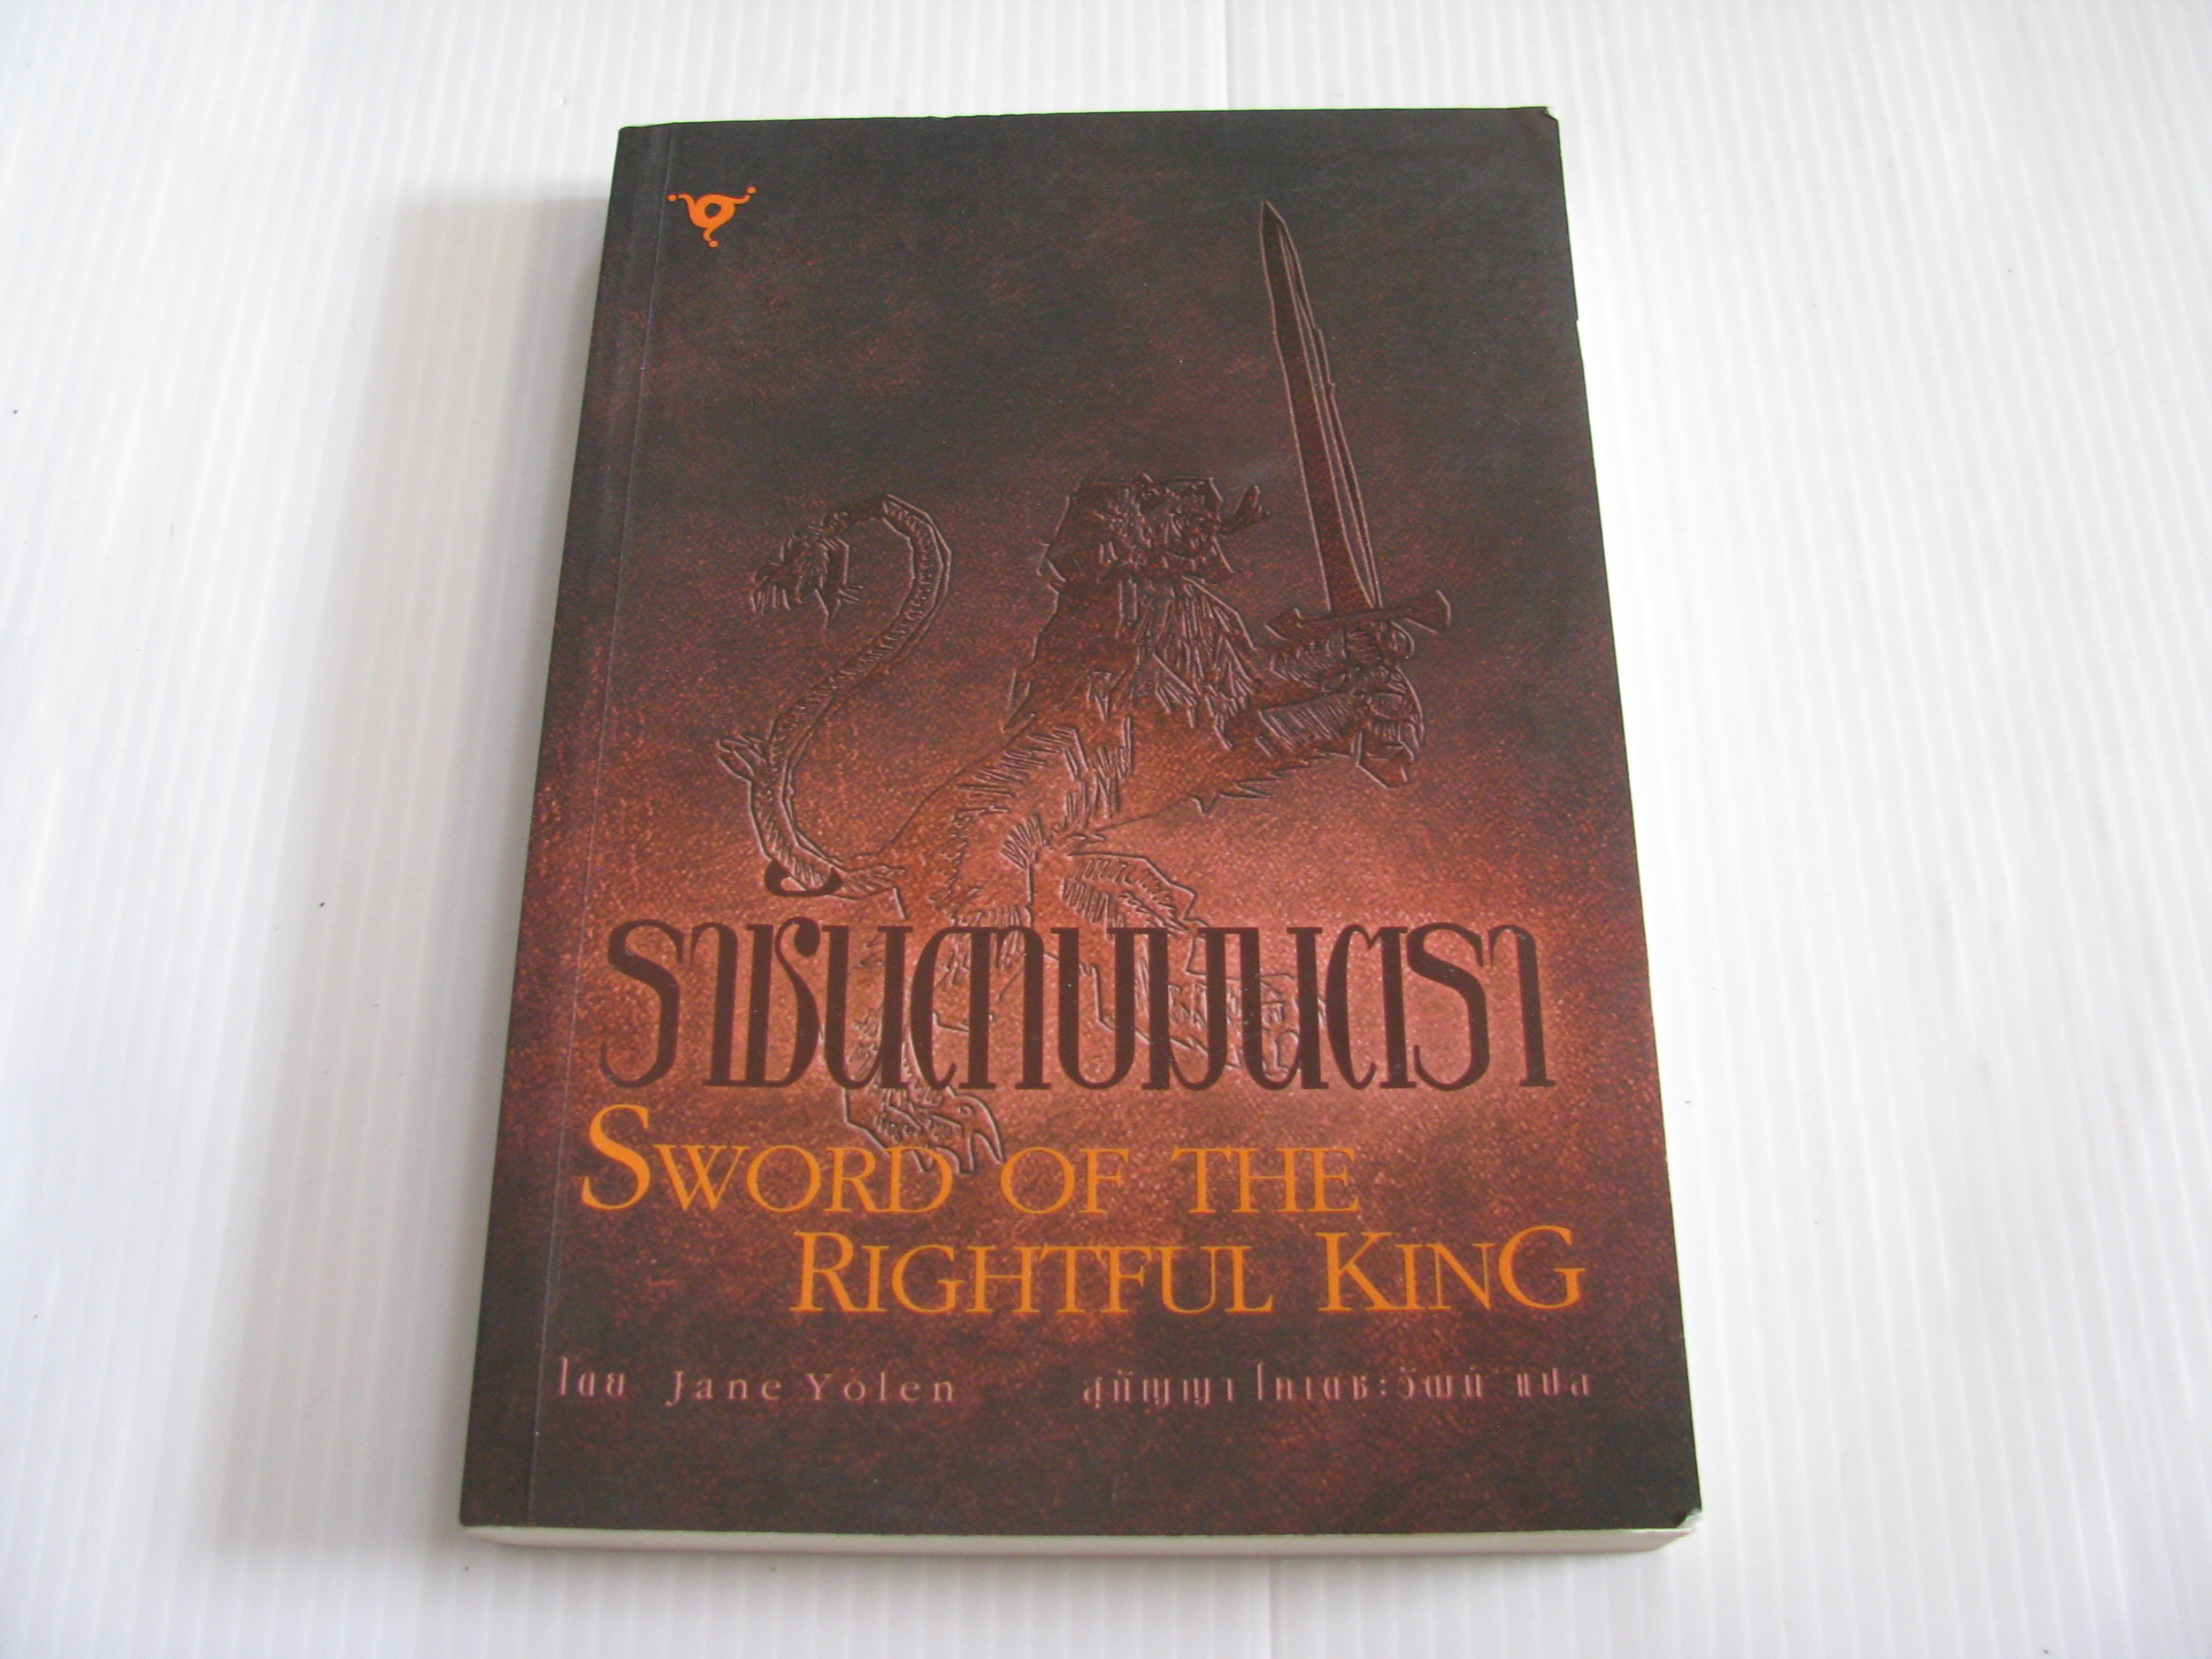 sword of the rightful king - by jane yolen essay This book study is on the fresh sword of the rightful king written by jane yolen the book is about the freshly crowned king arthur who regulations the land but.